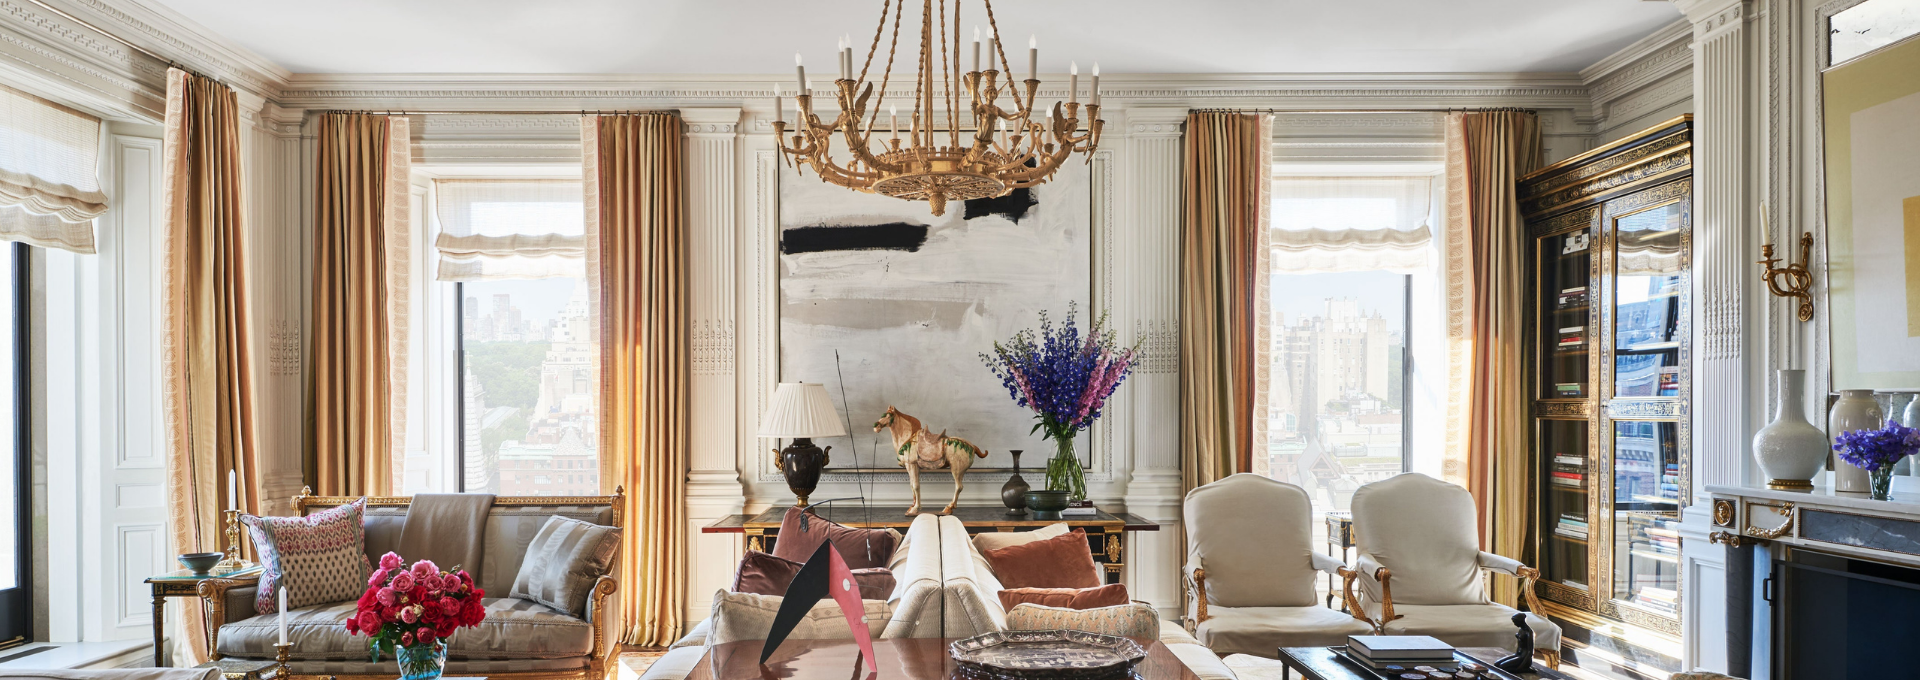 Top 5 Interior Designers in Los Angeles